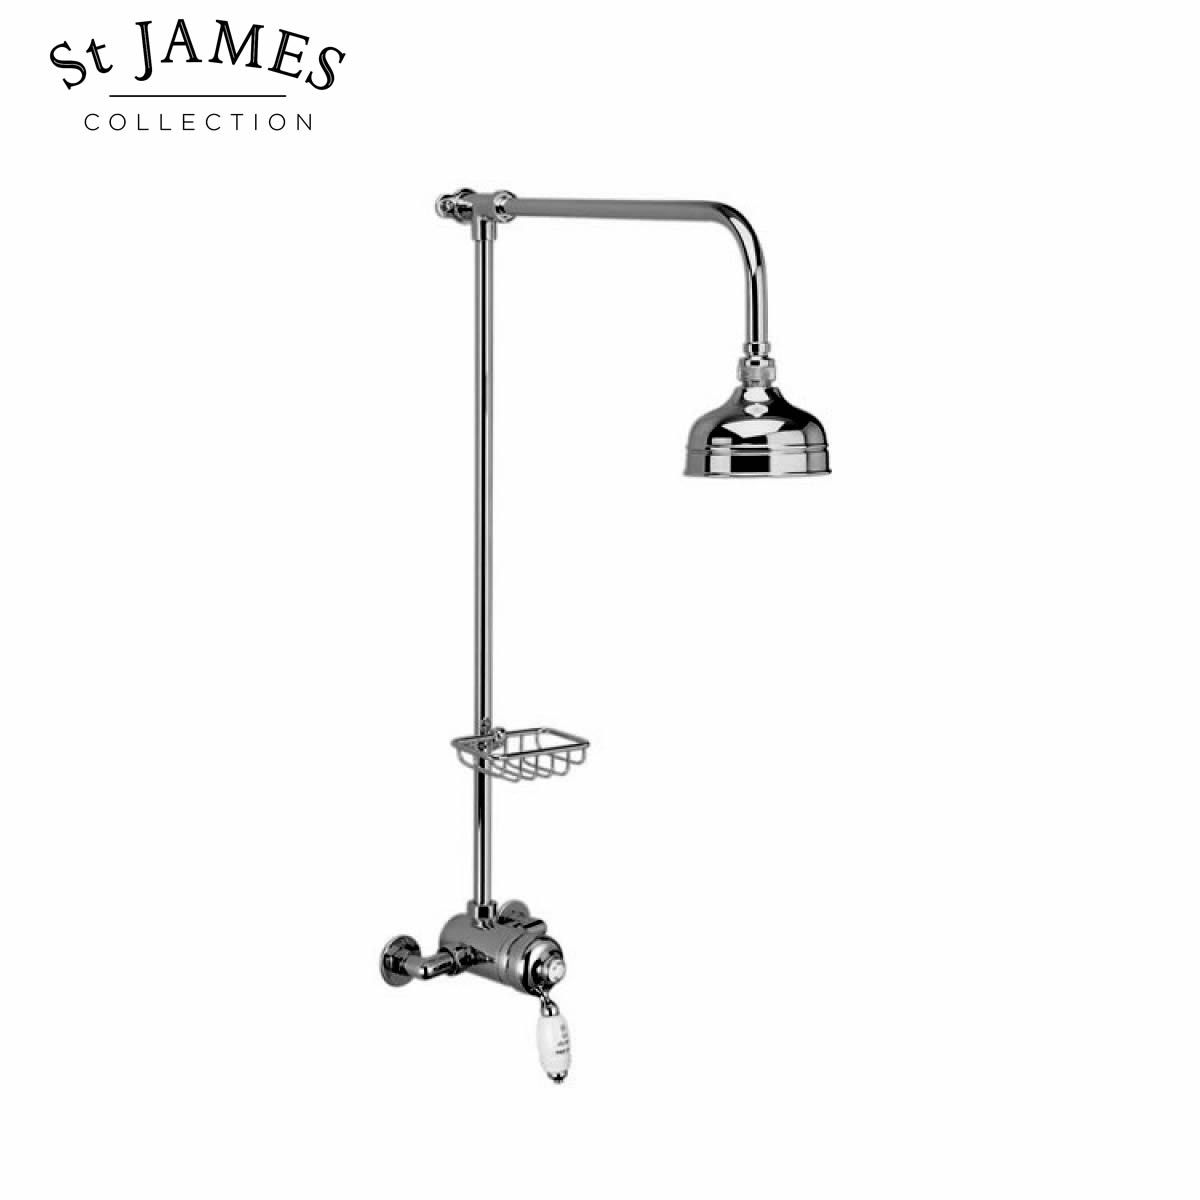 St James Exposed Manual Shower Valve with Riser Rail and